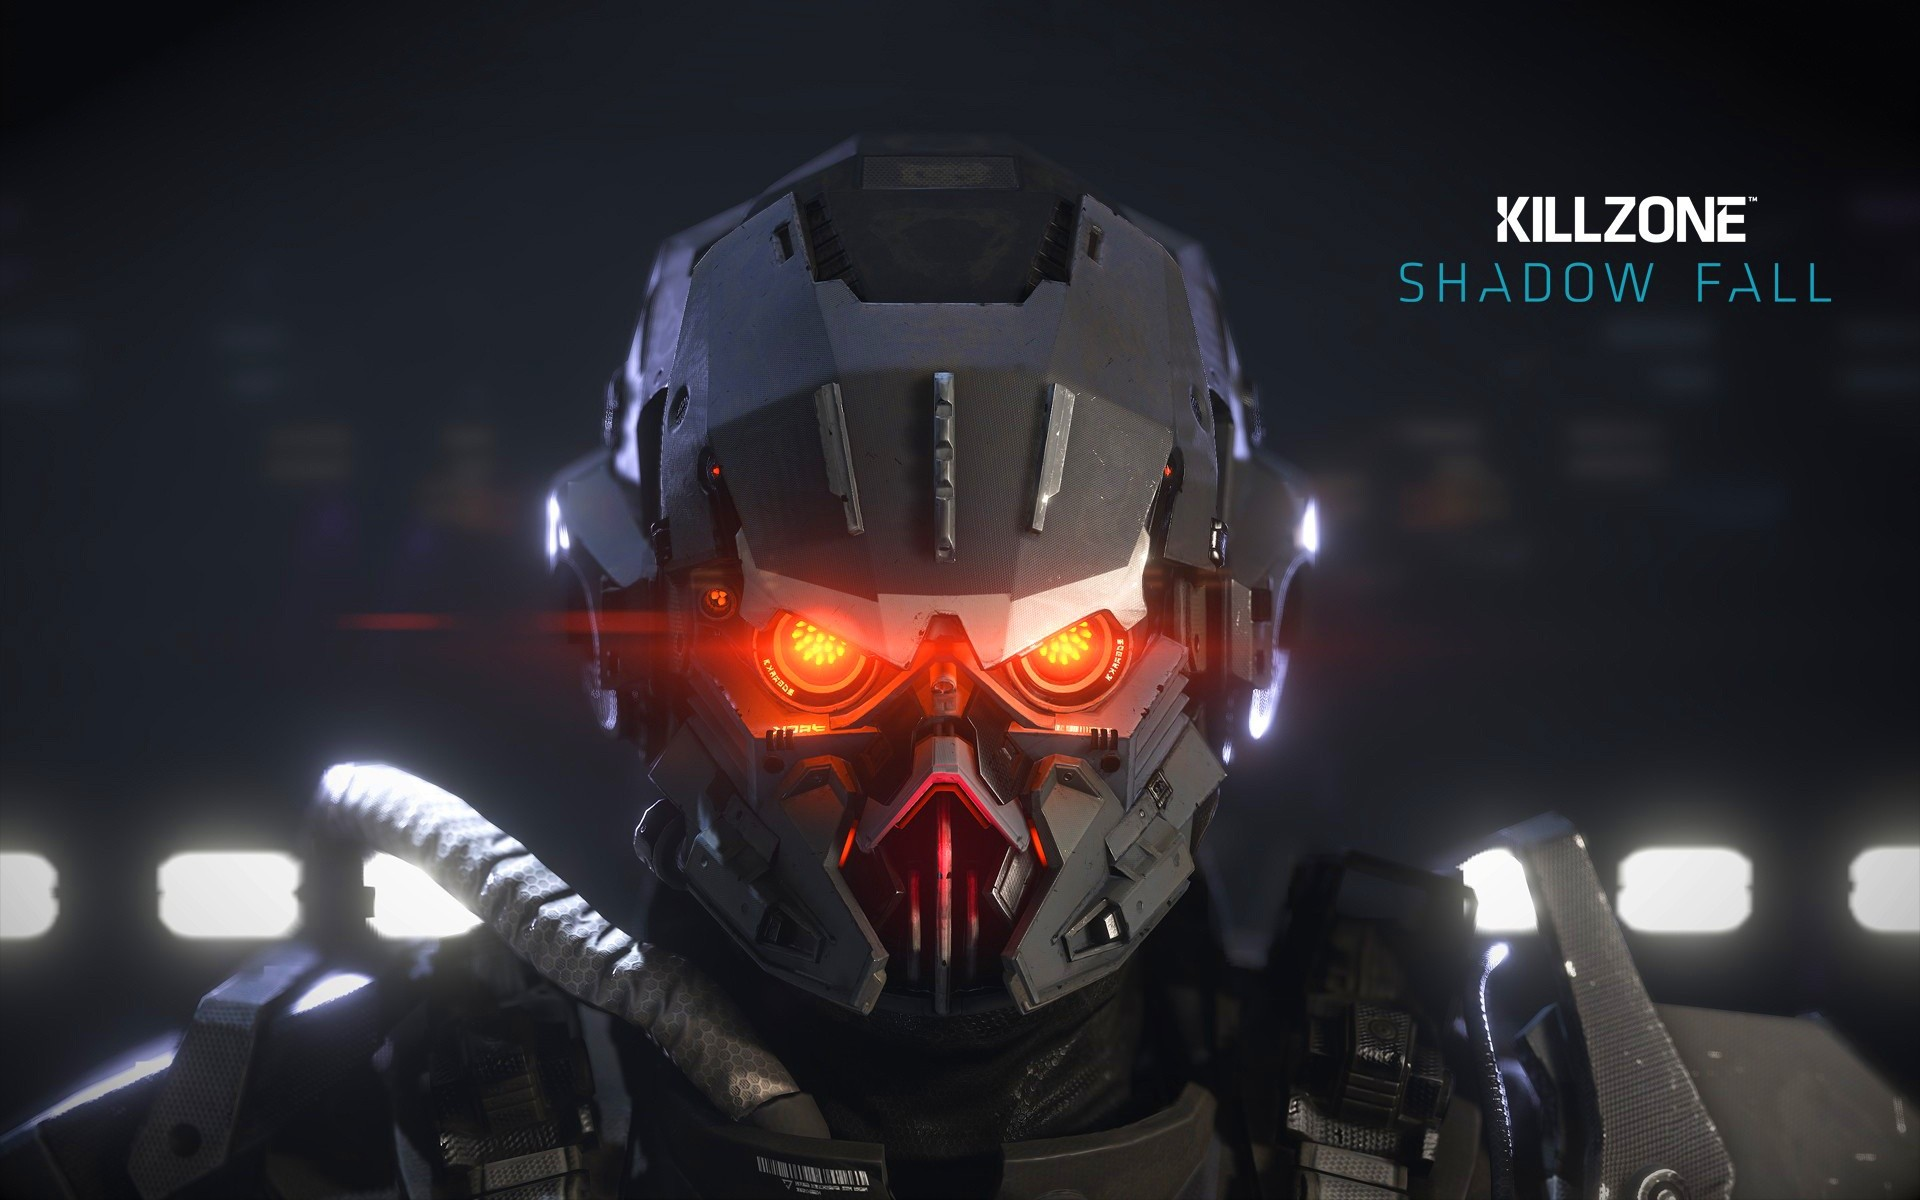 General 1920x1200 Killzone Killzone: Shadow Fall video games glowing eyes video game art